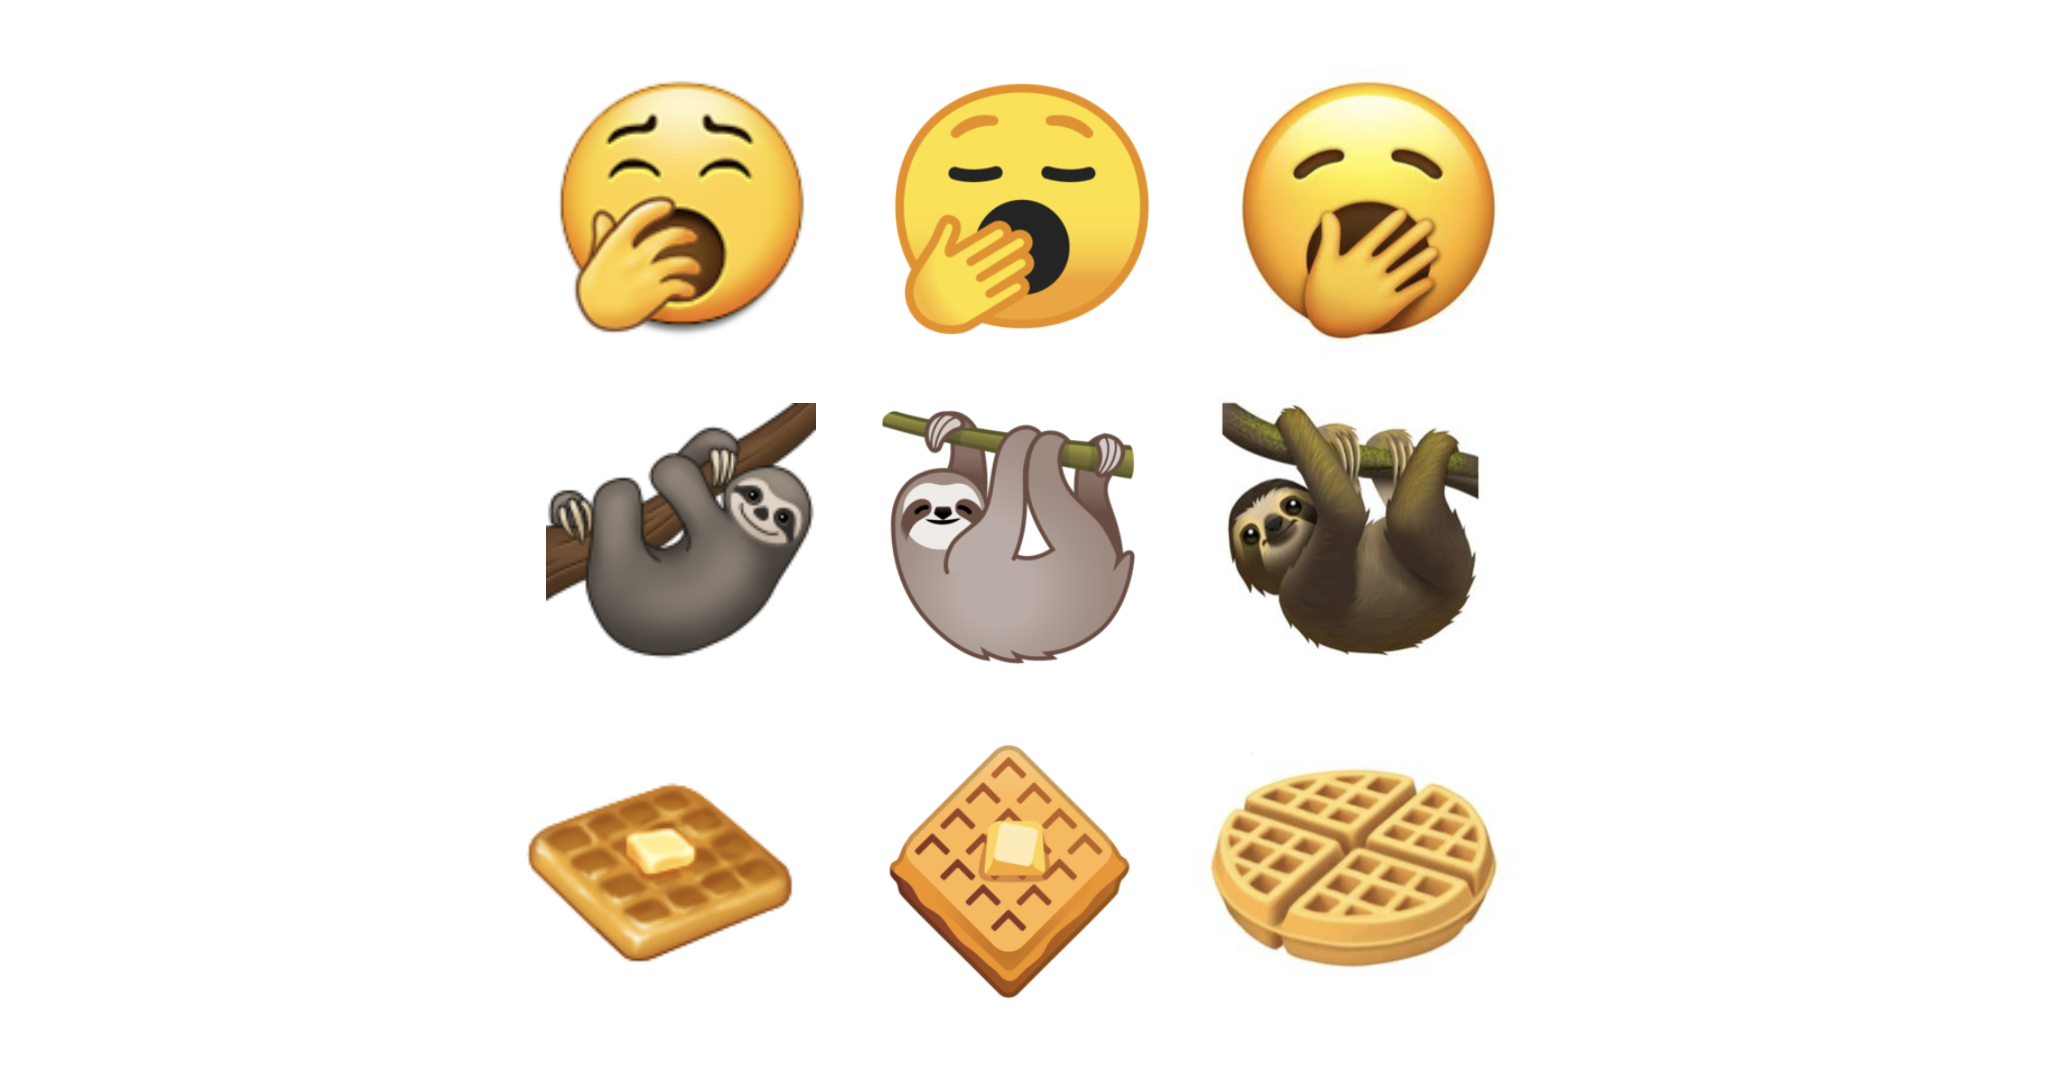 When Are The New Emojis Coming Out